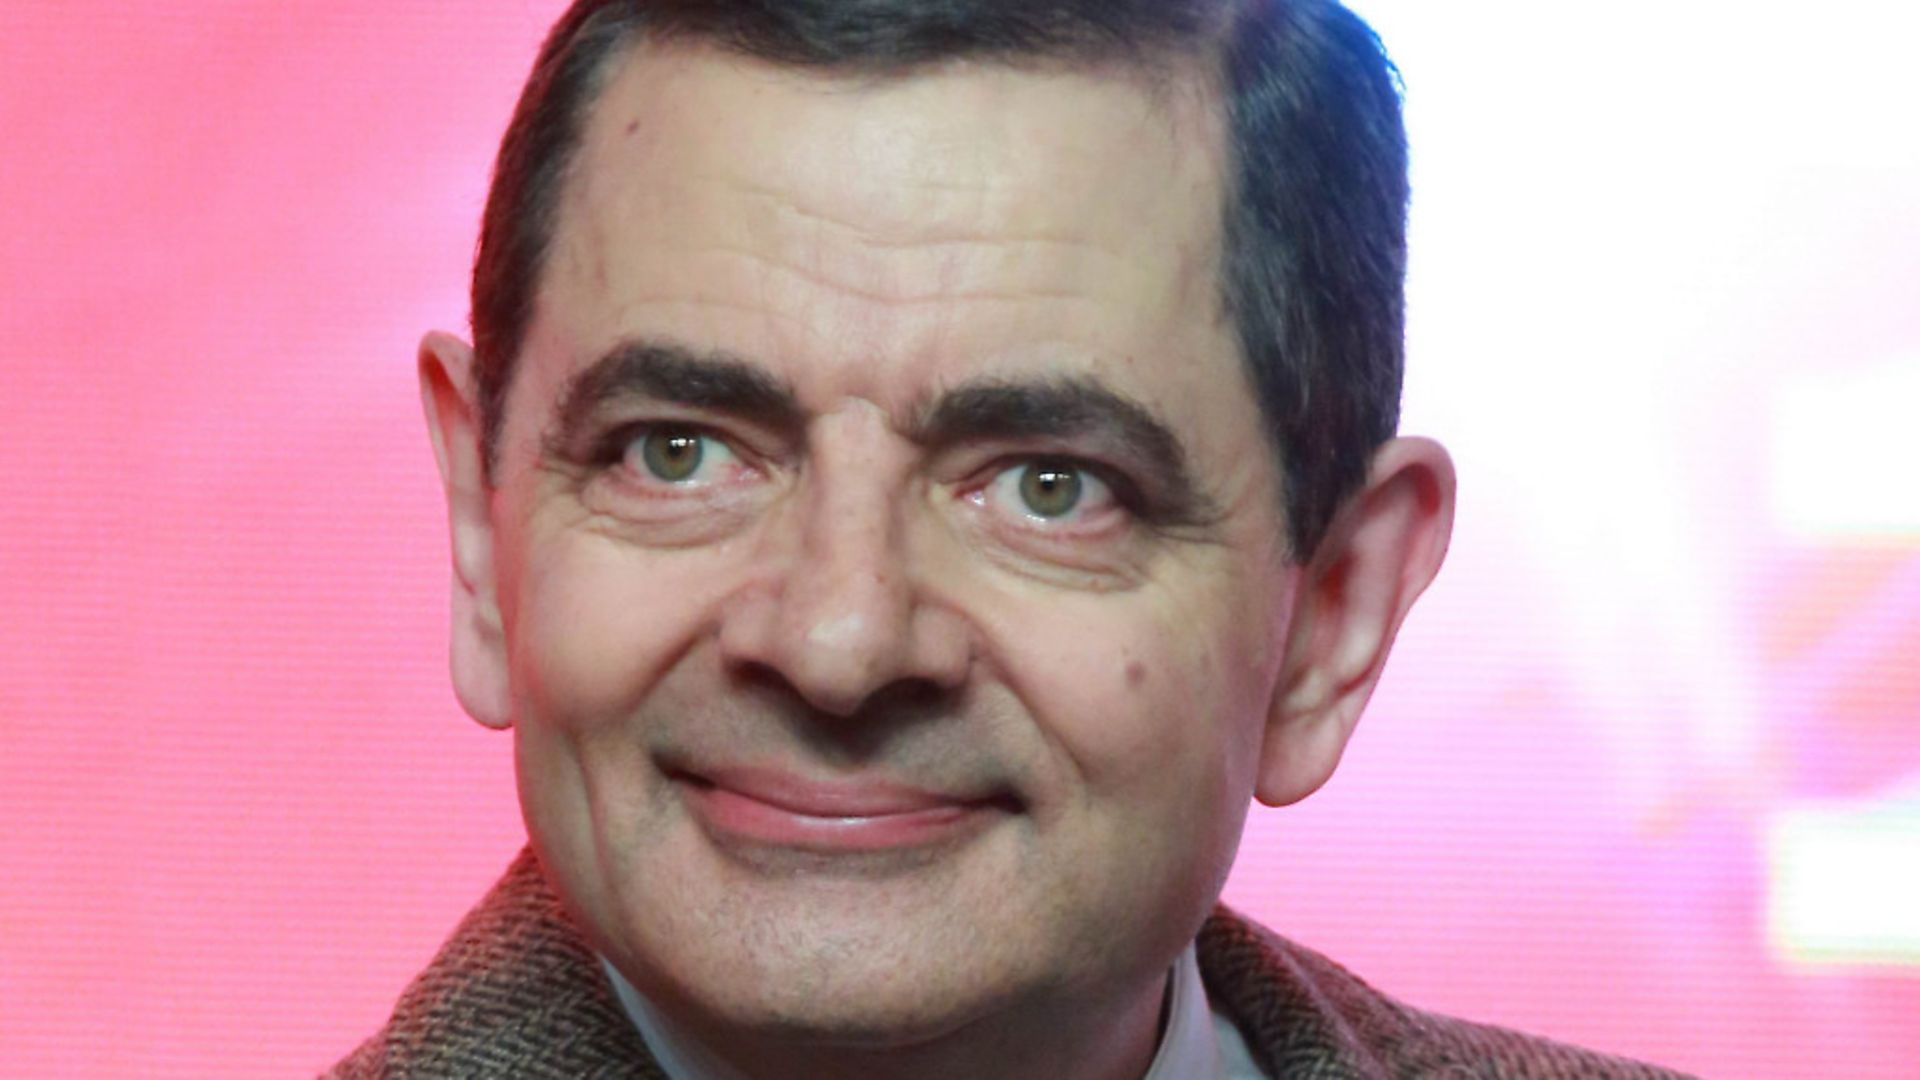 Rowan Atkinson has been having his say on the burka row. Picture: VCG/VCG via Getty Images - Credit: VCG via Getty Images